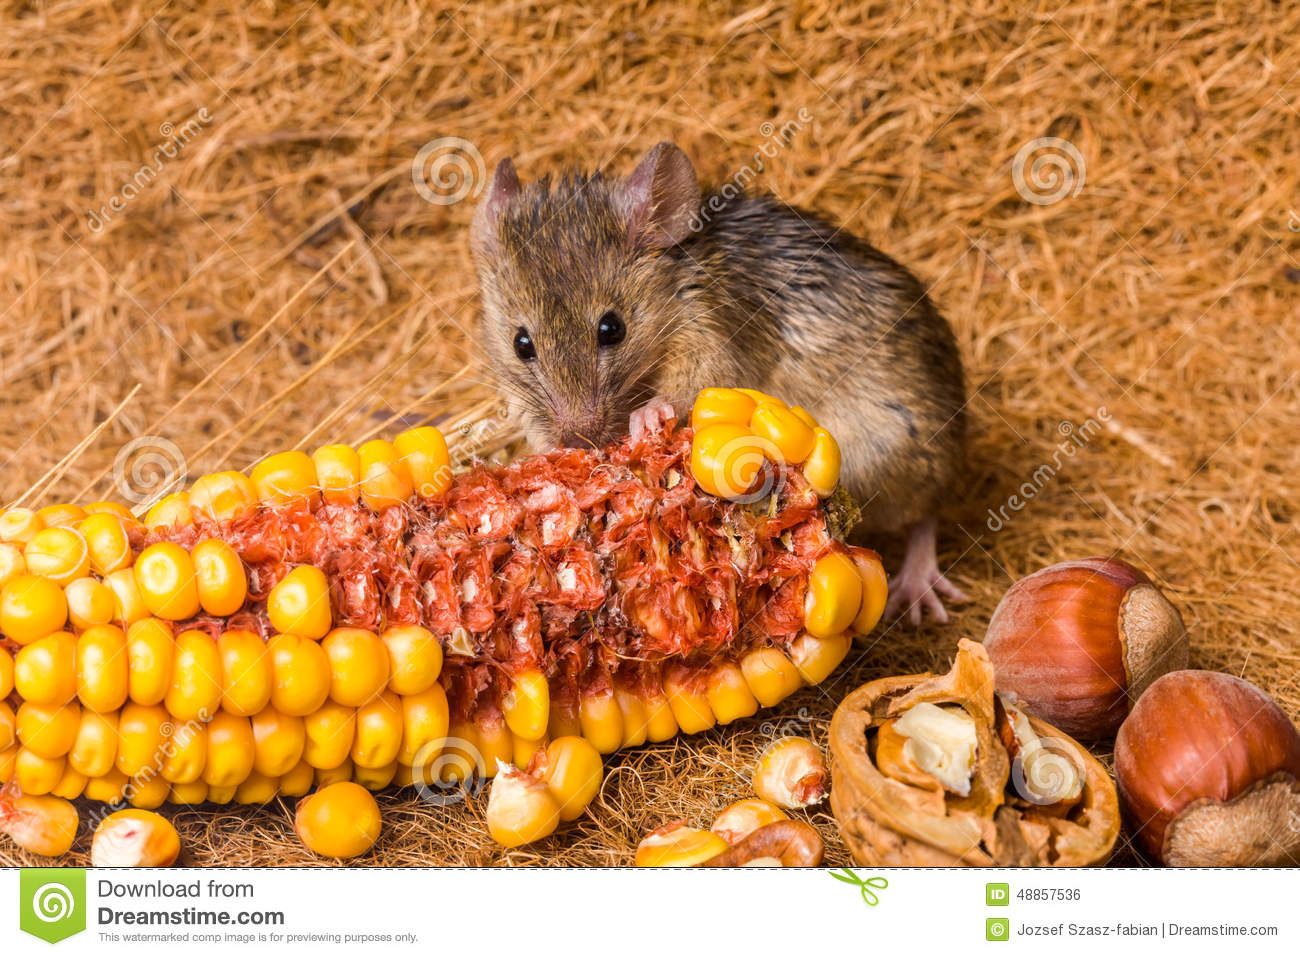 Stock Photo House Mouse Mus Musculus Eating Corn Close View Tiny Seeds Image48857536 on Free Tiny House Plans